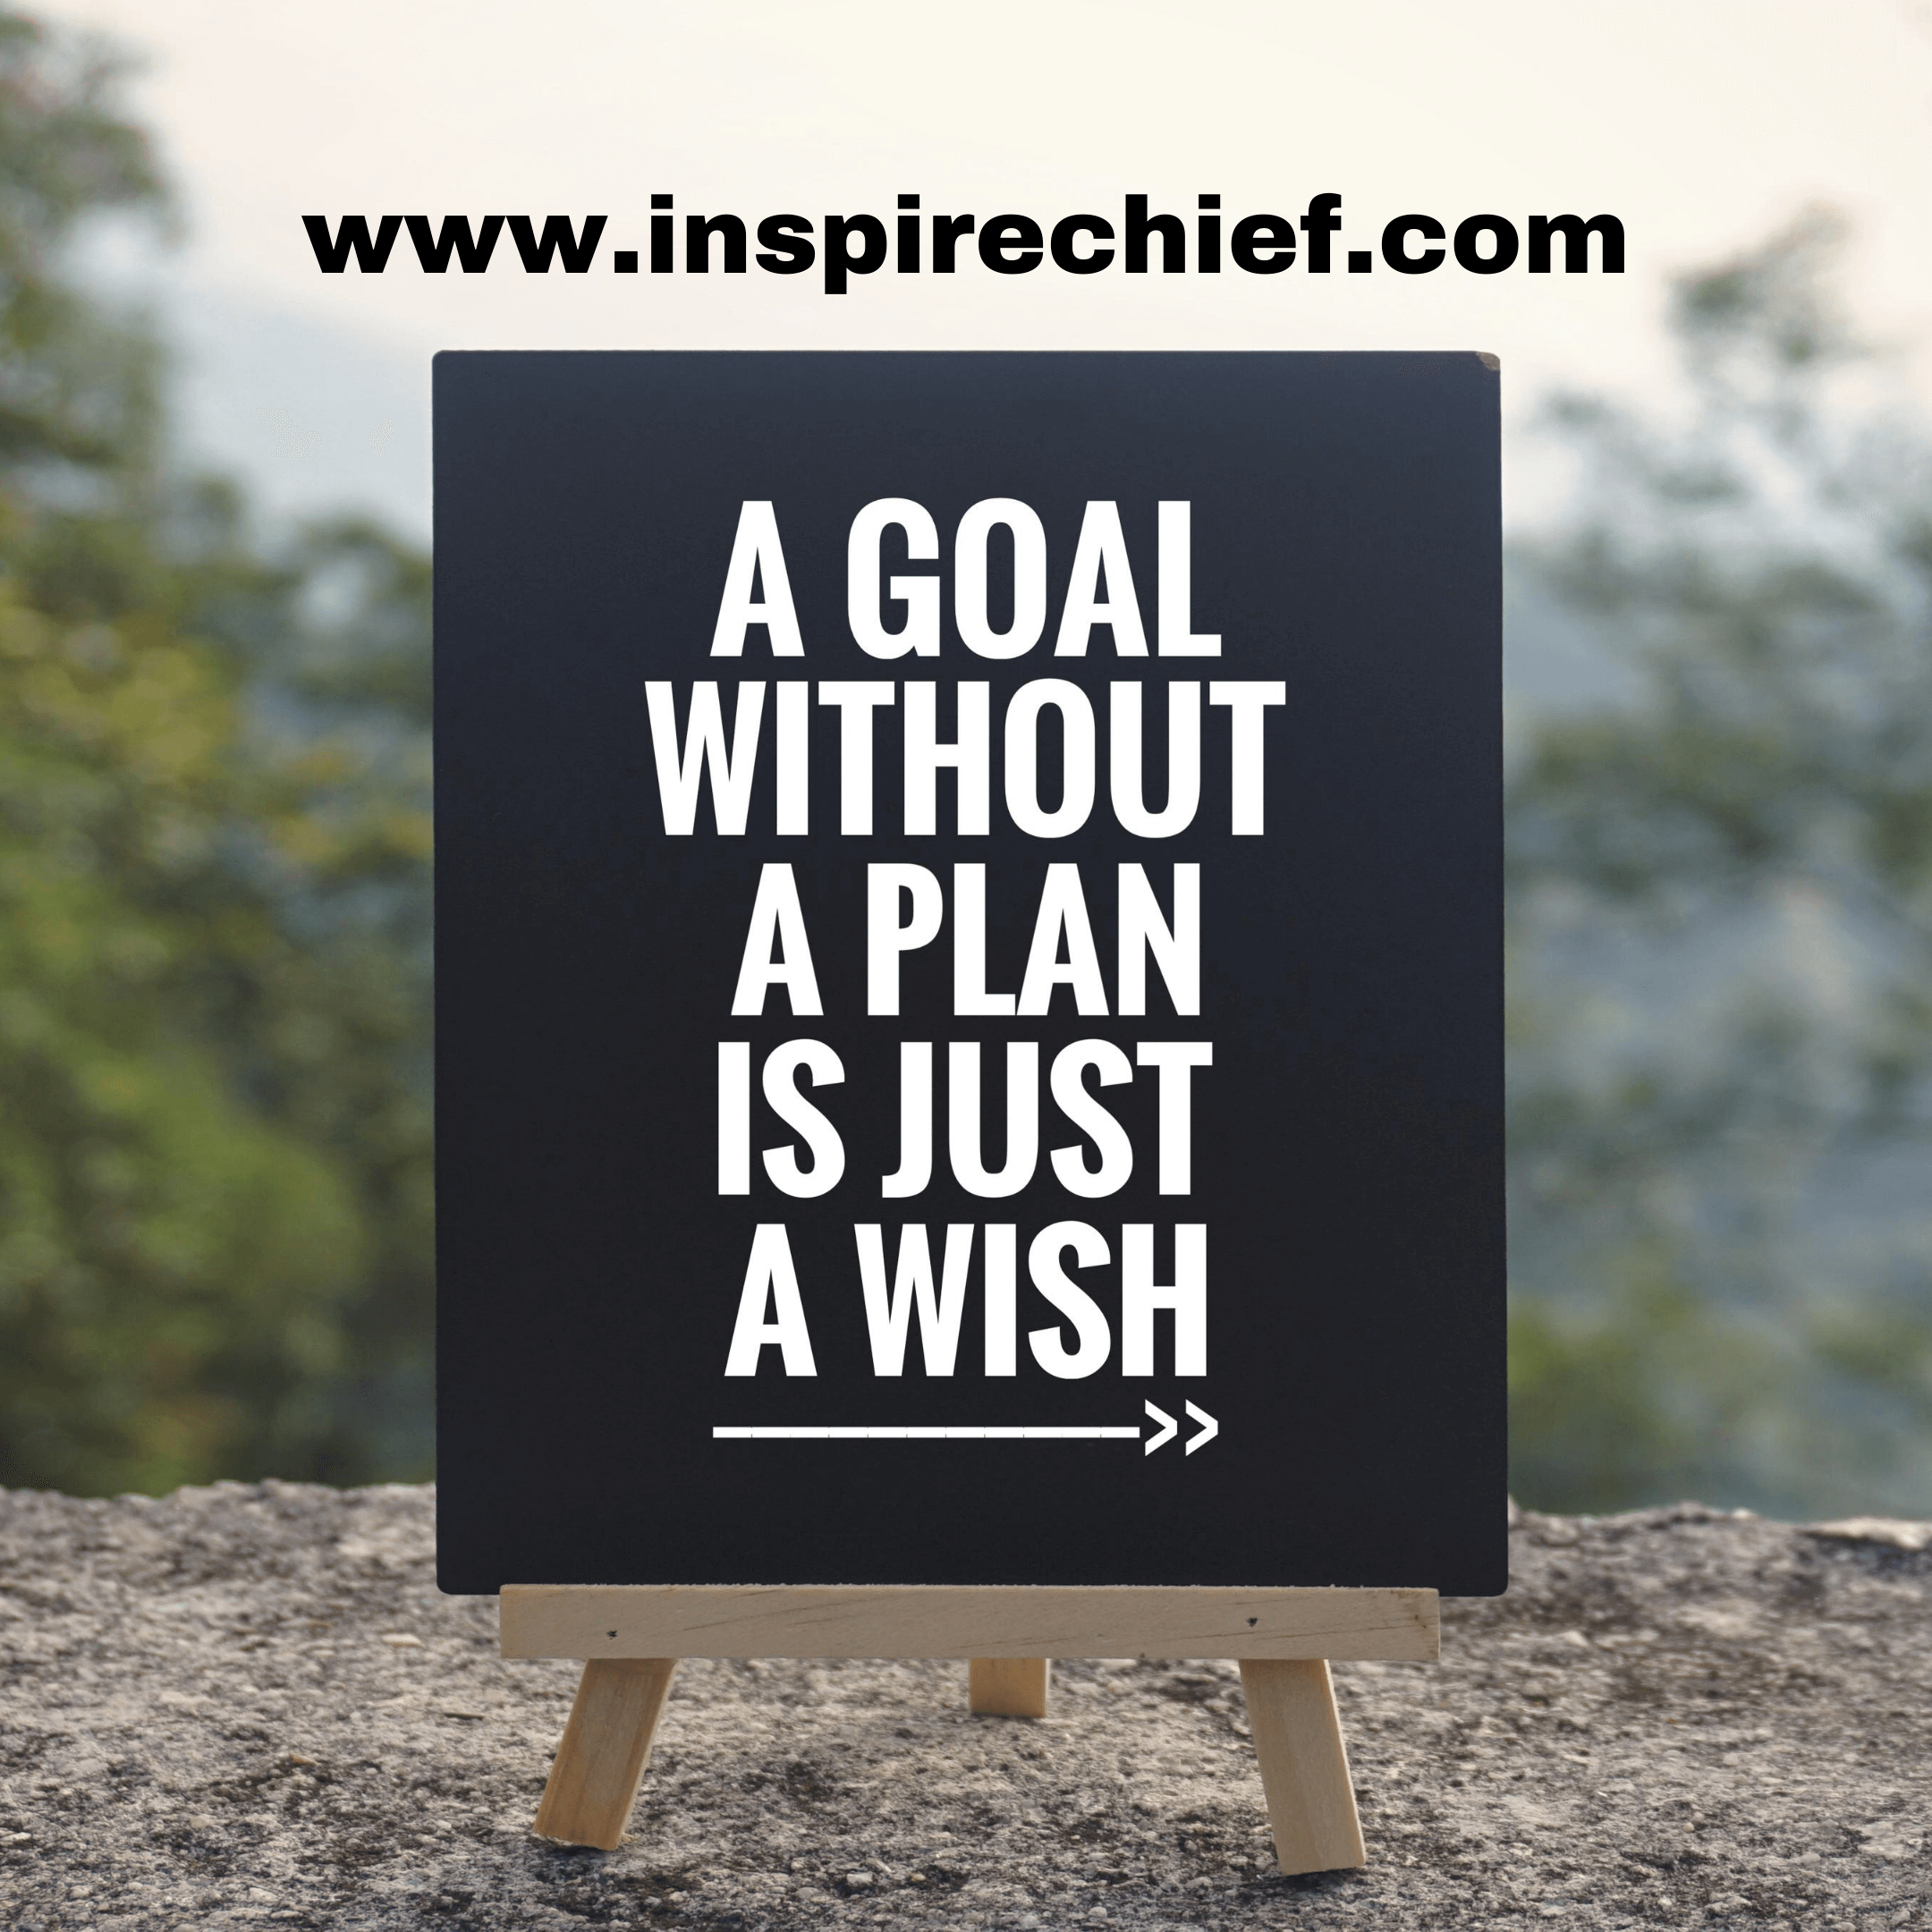 goal-quote-without-plan-wish